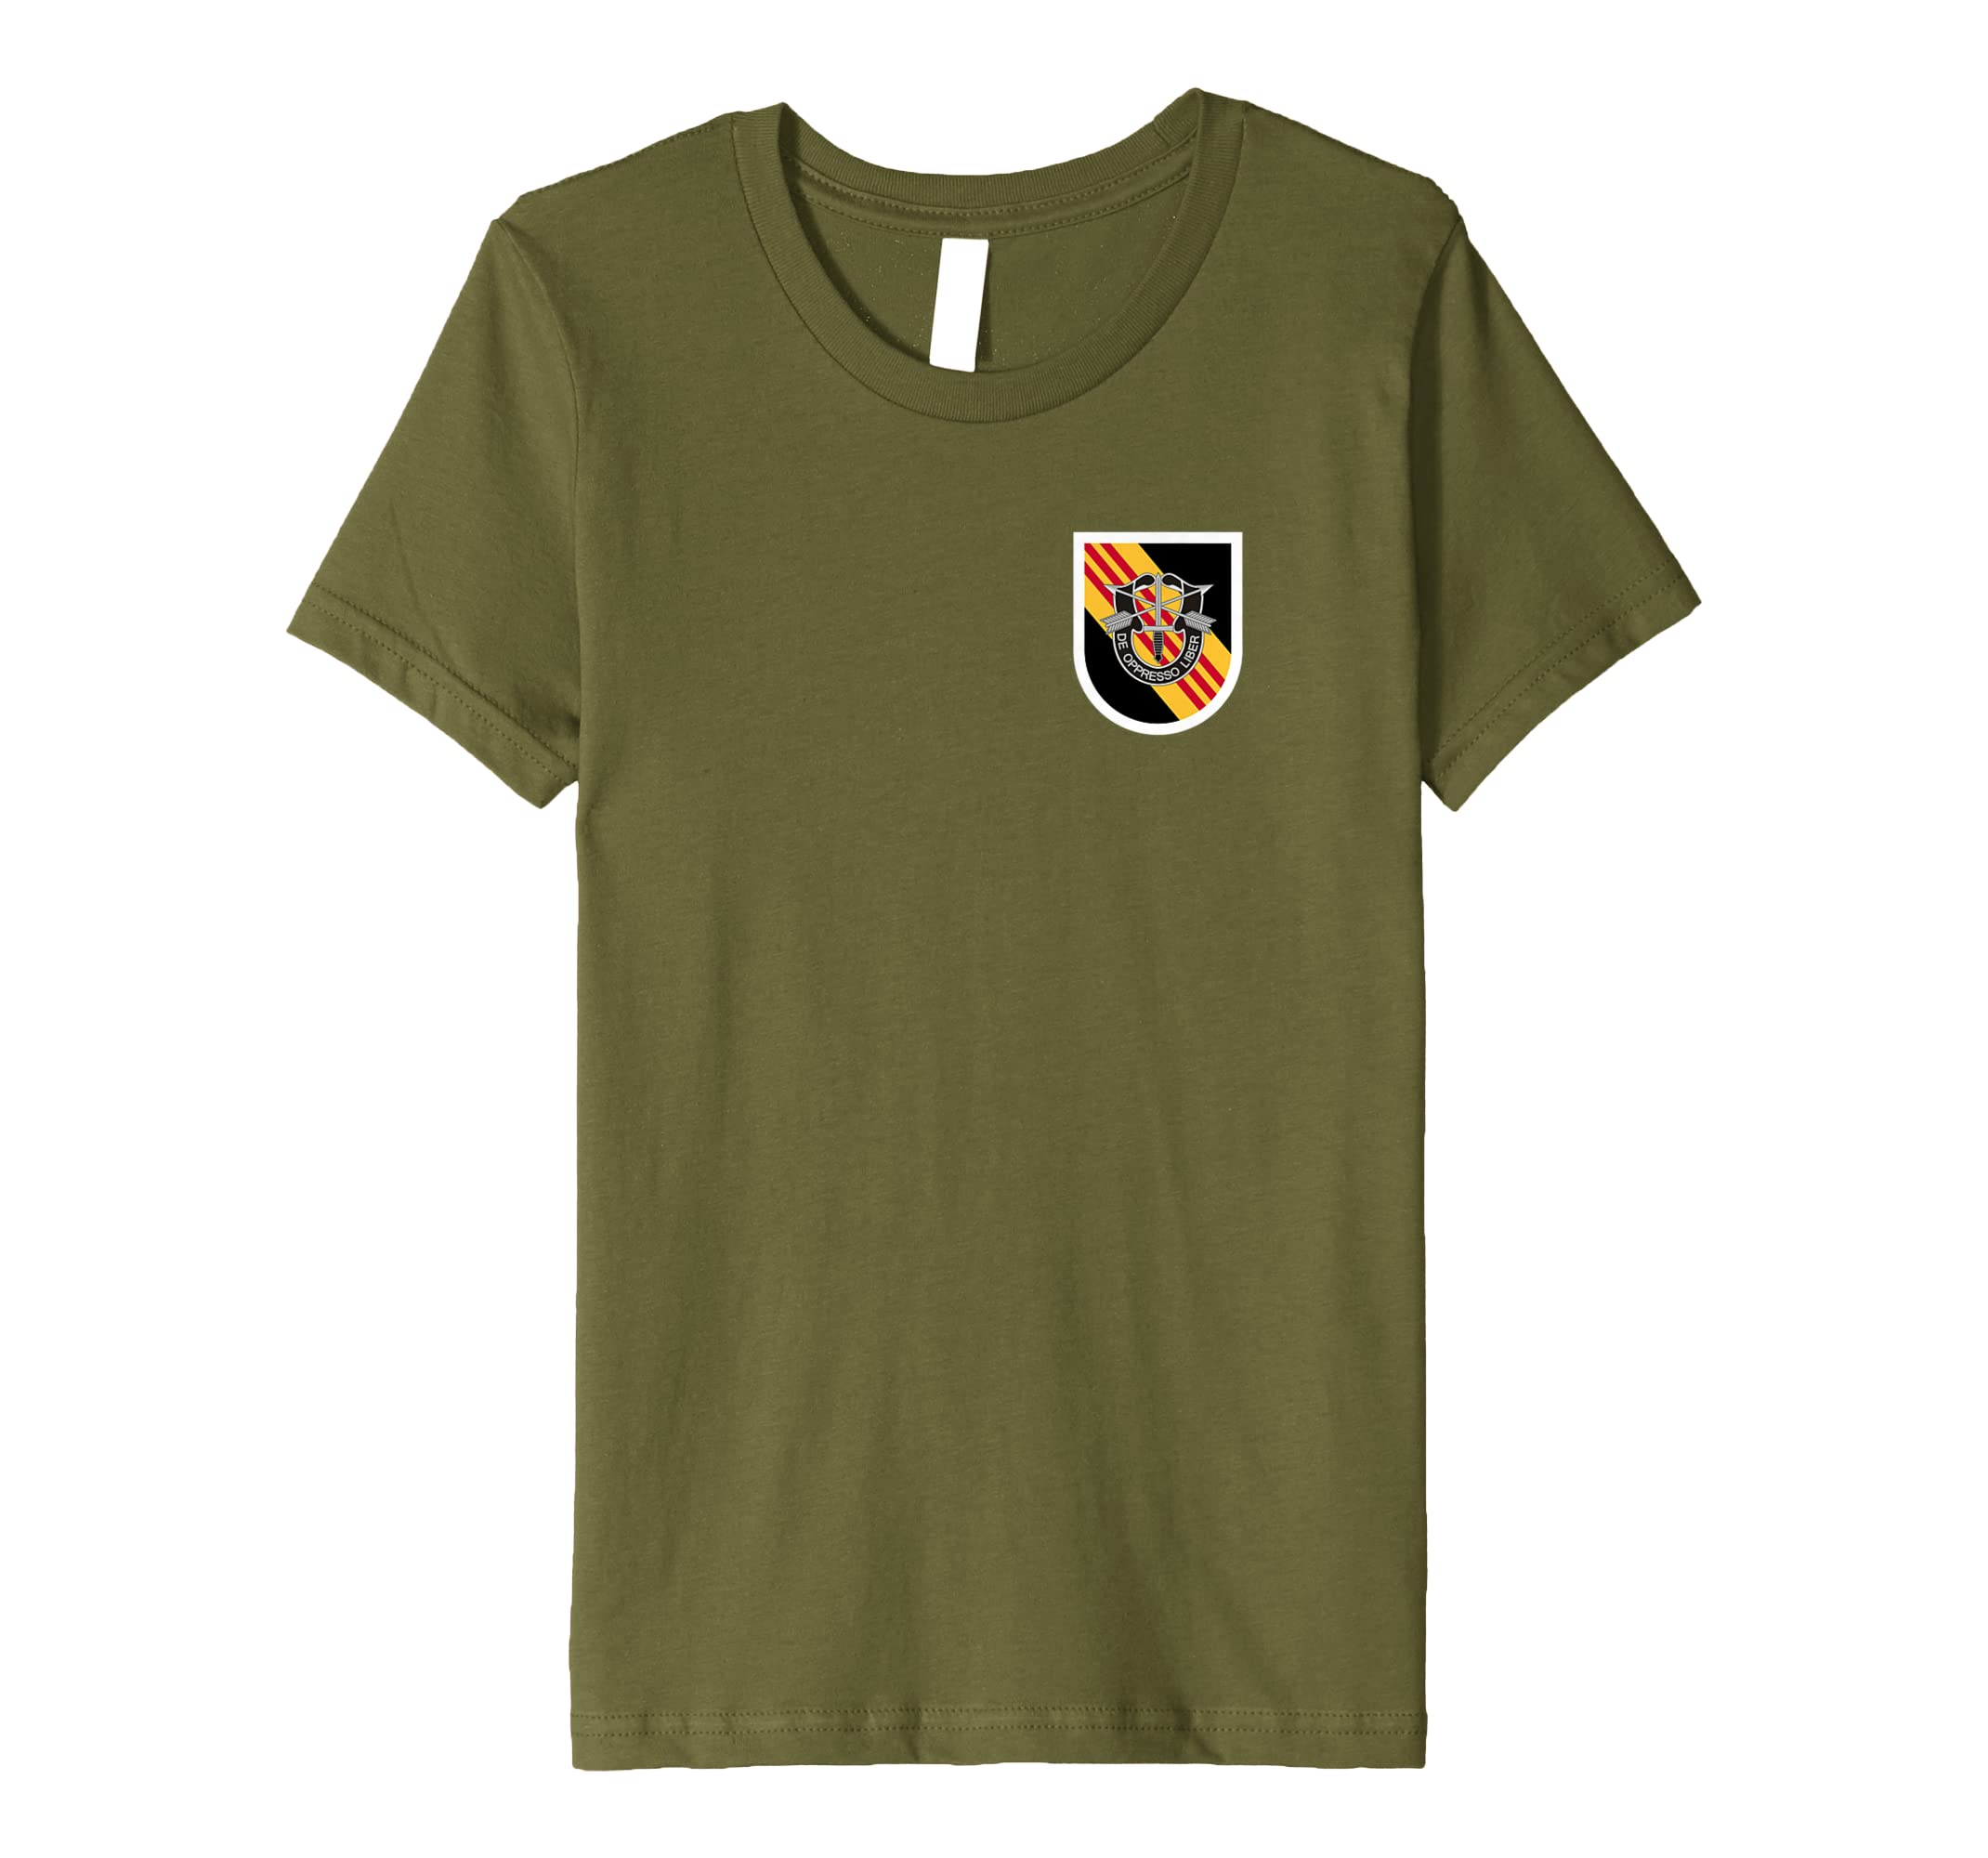 Amazon Special Forces Shirt 5th Special Forces Group SFG